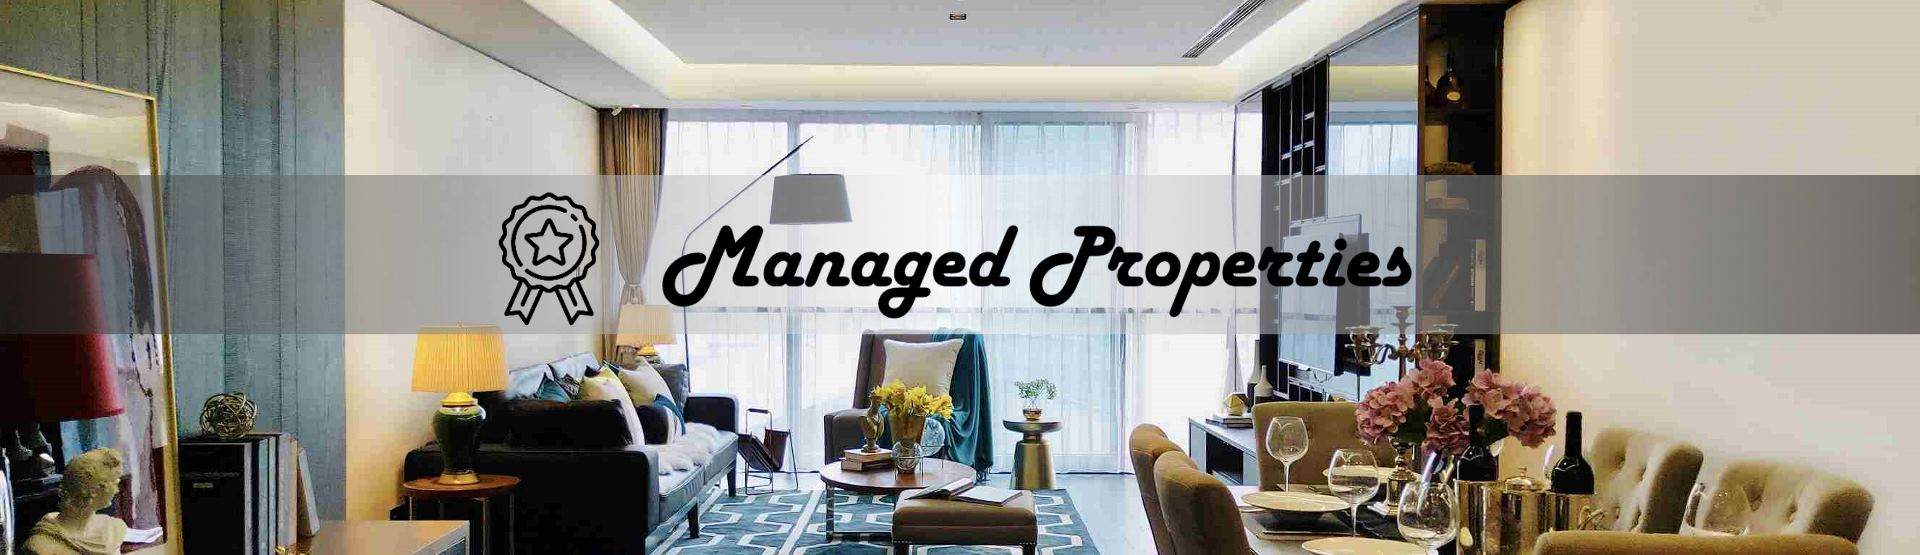 Managed Properties Shanghai